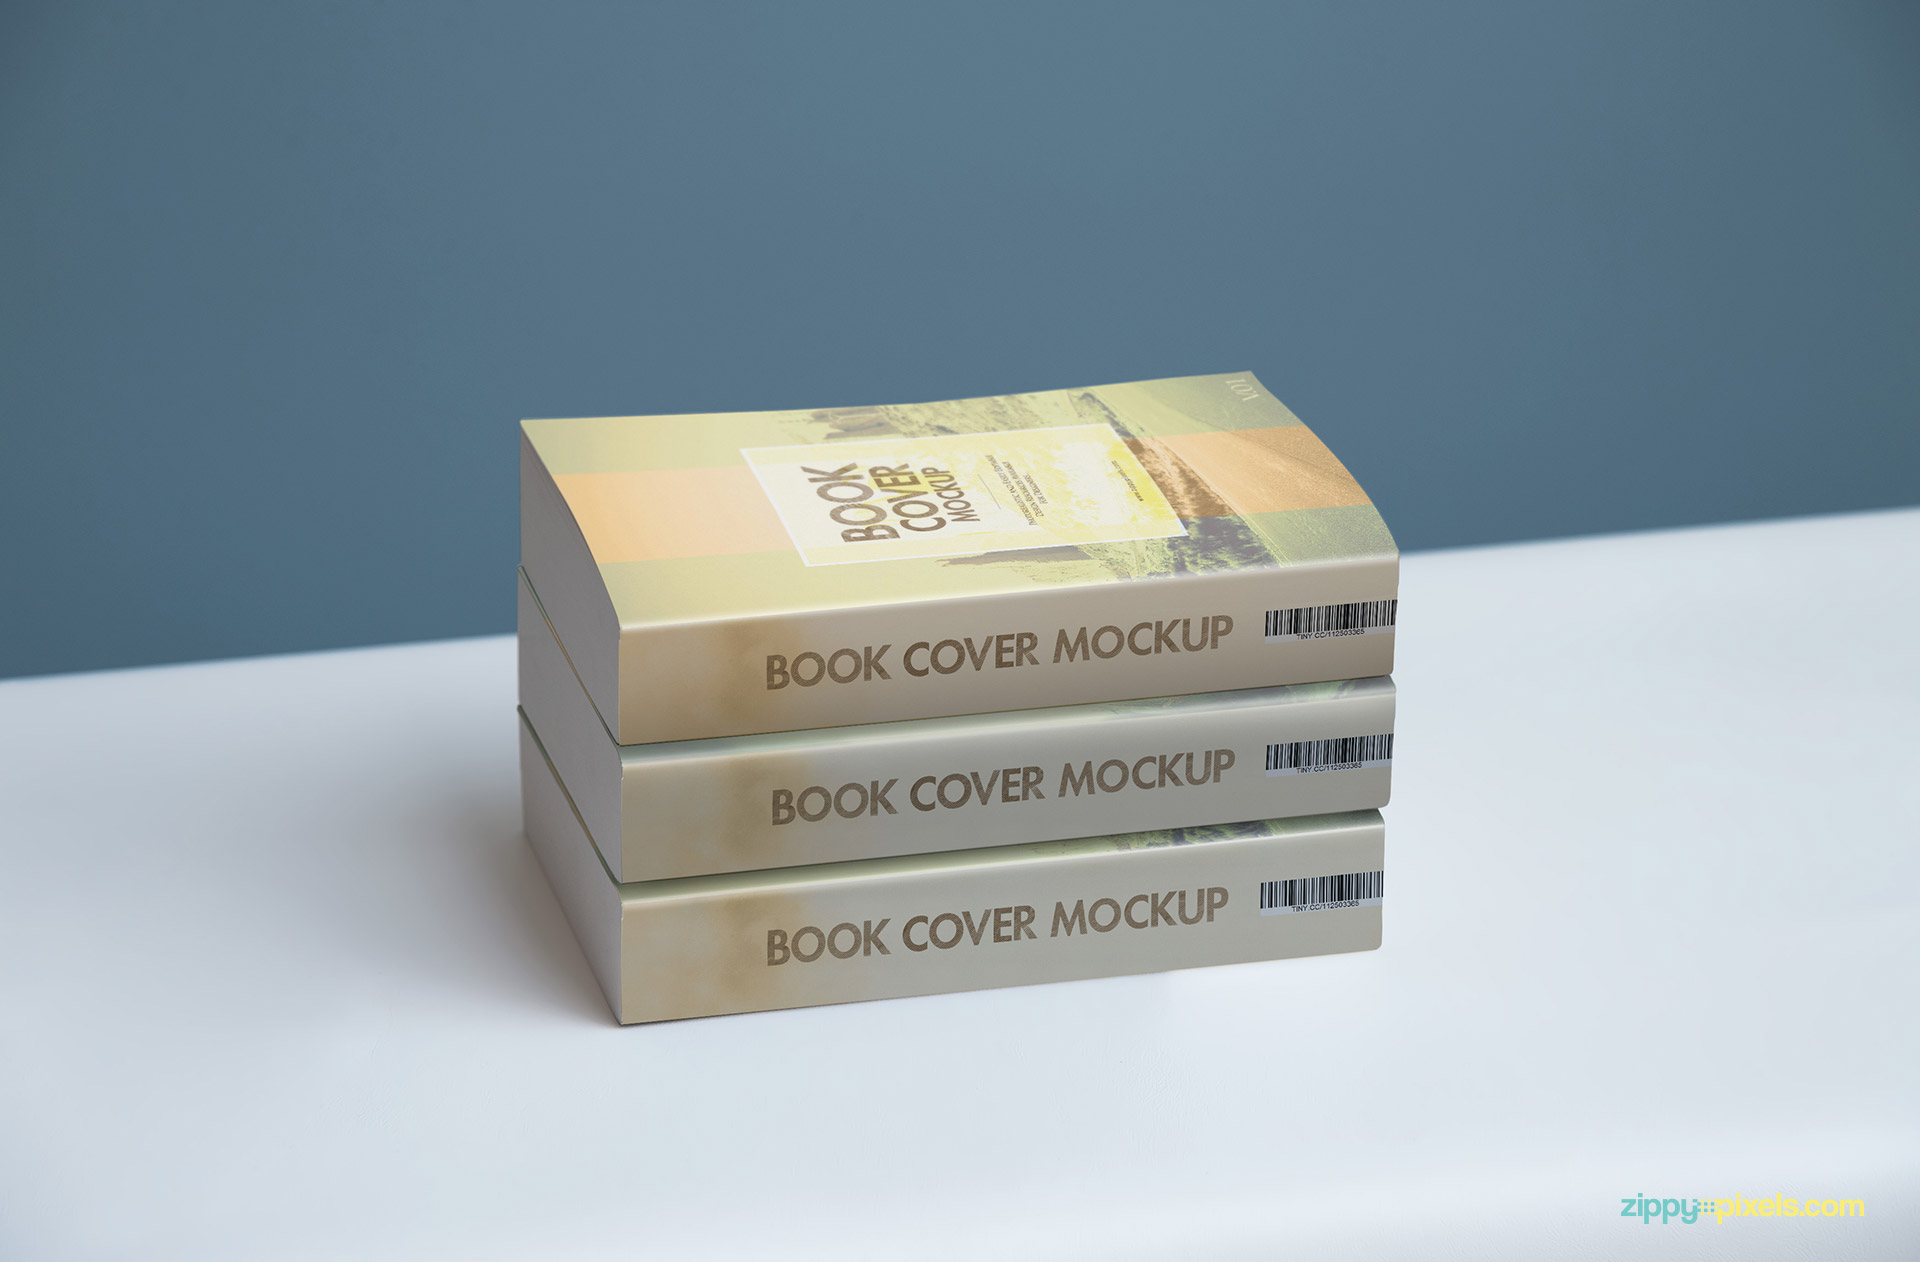 Softcover book mockup showing a stack of 3 books for cover designs